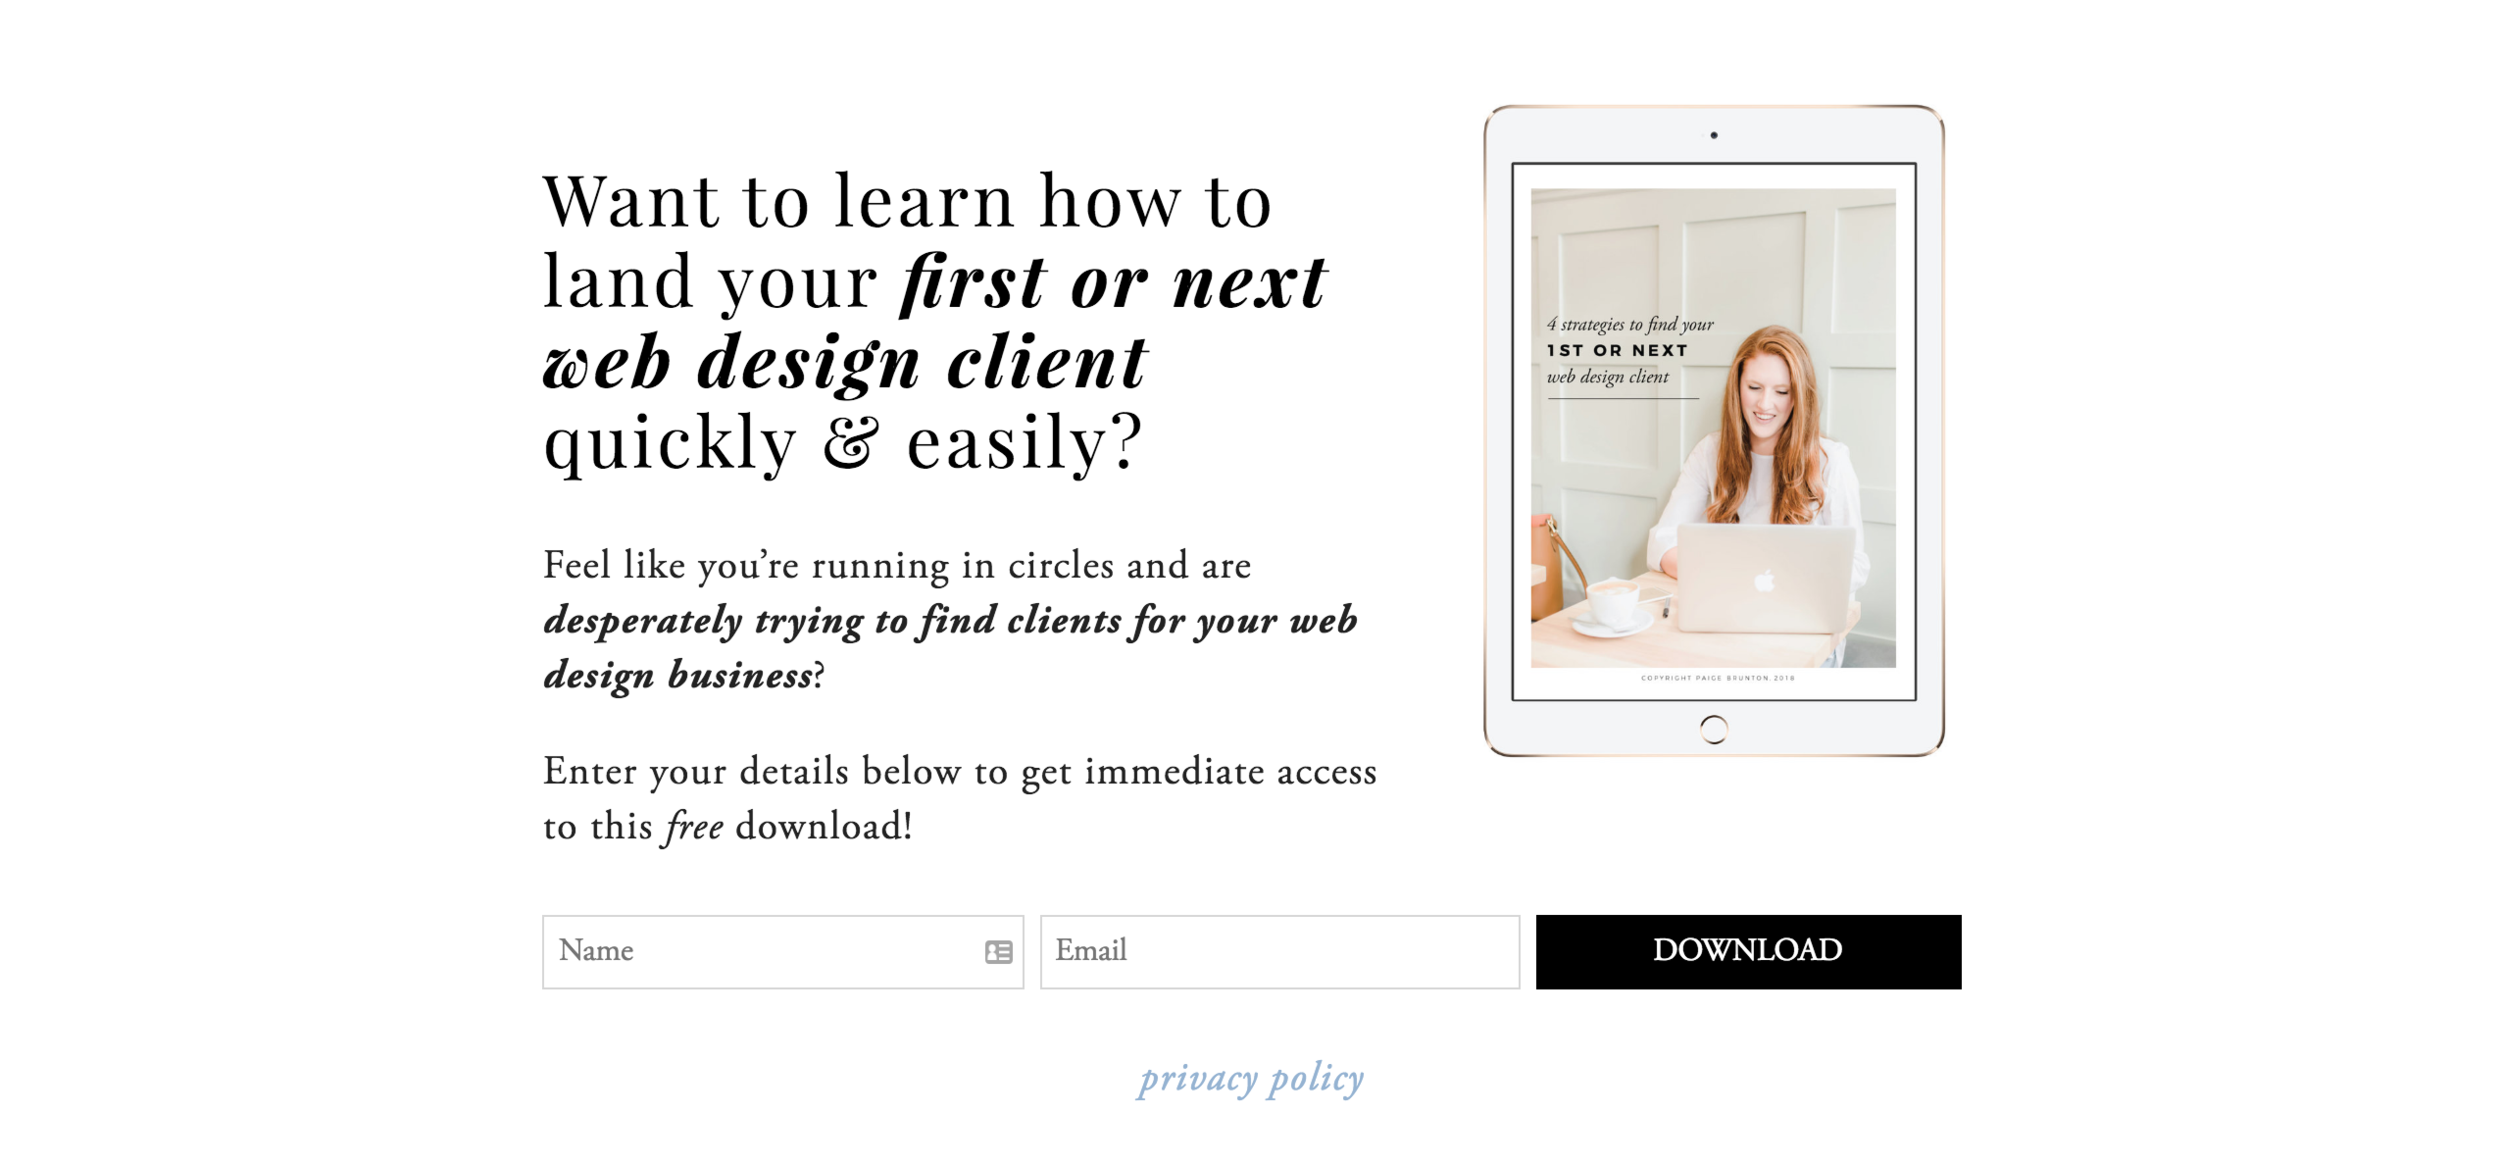 opt-in gift page in Squarespace using ConvertKit.png